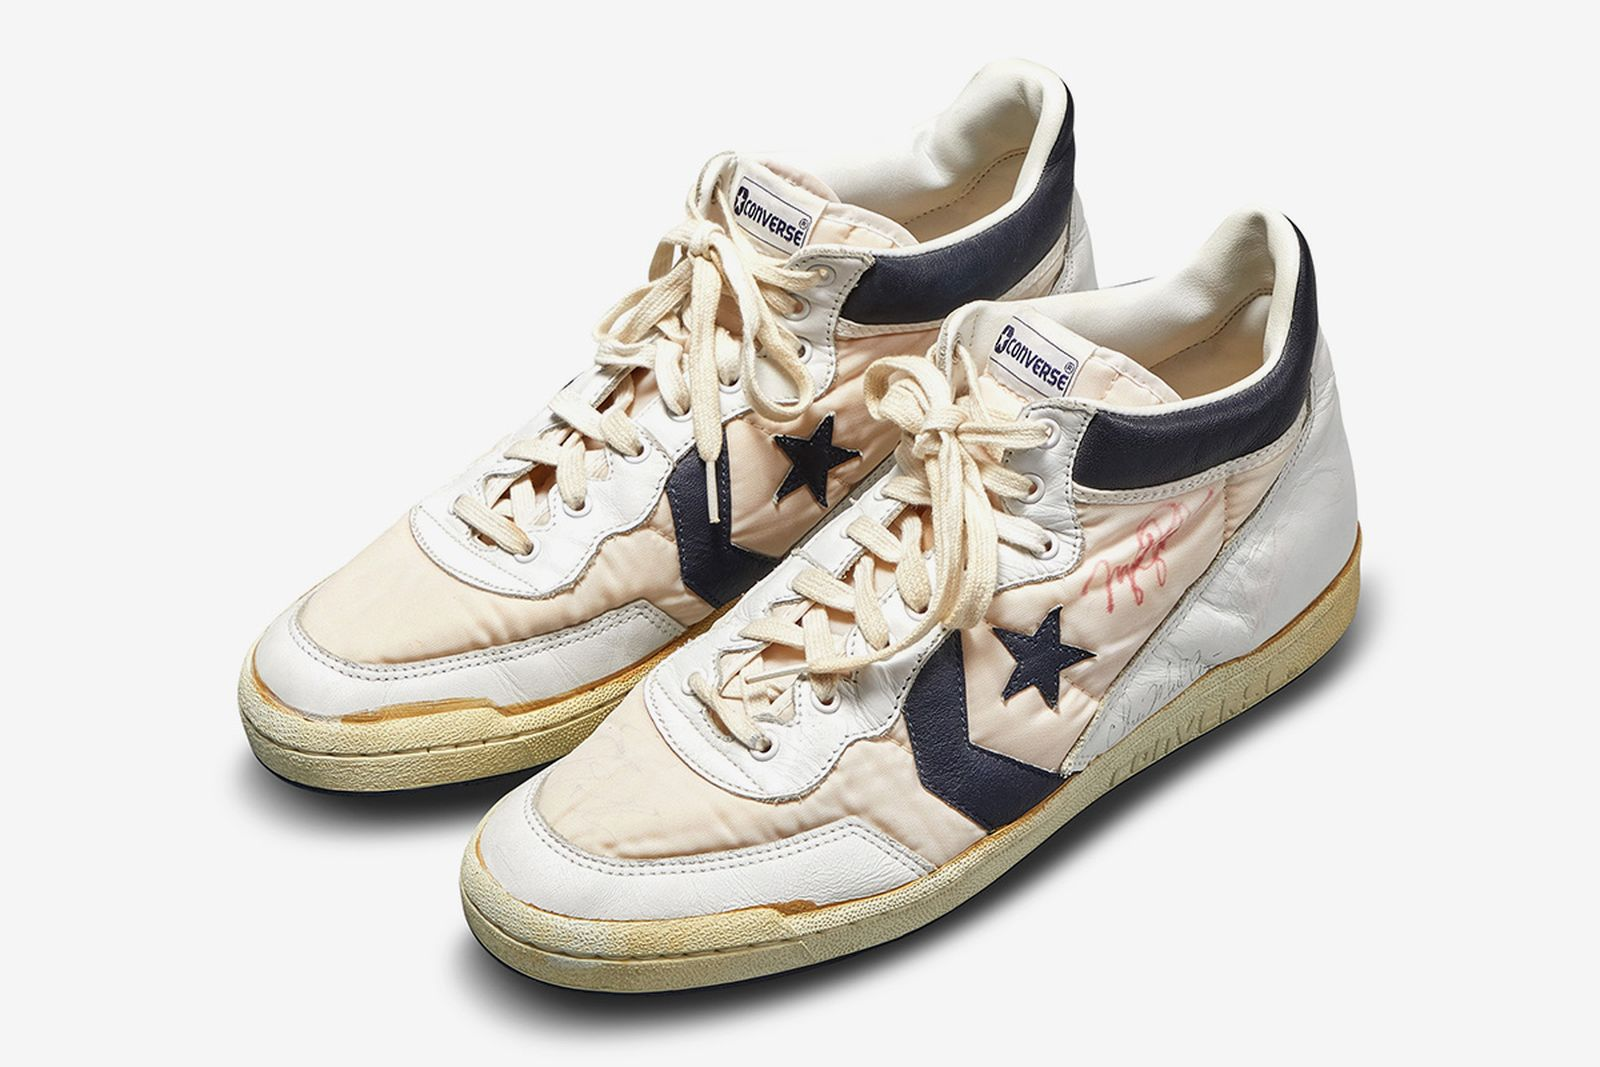 bill-bowerman-track-spikes-sothebys-olympic-auction-05